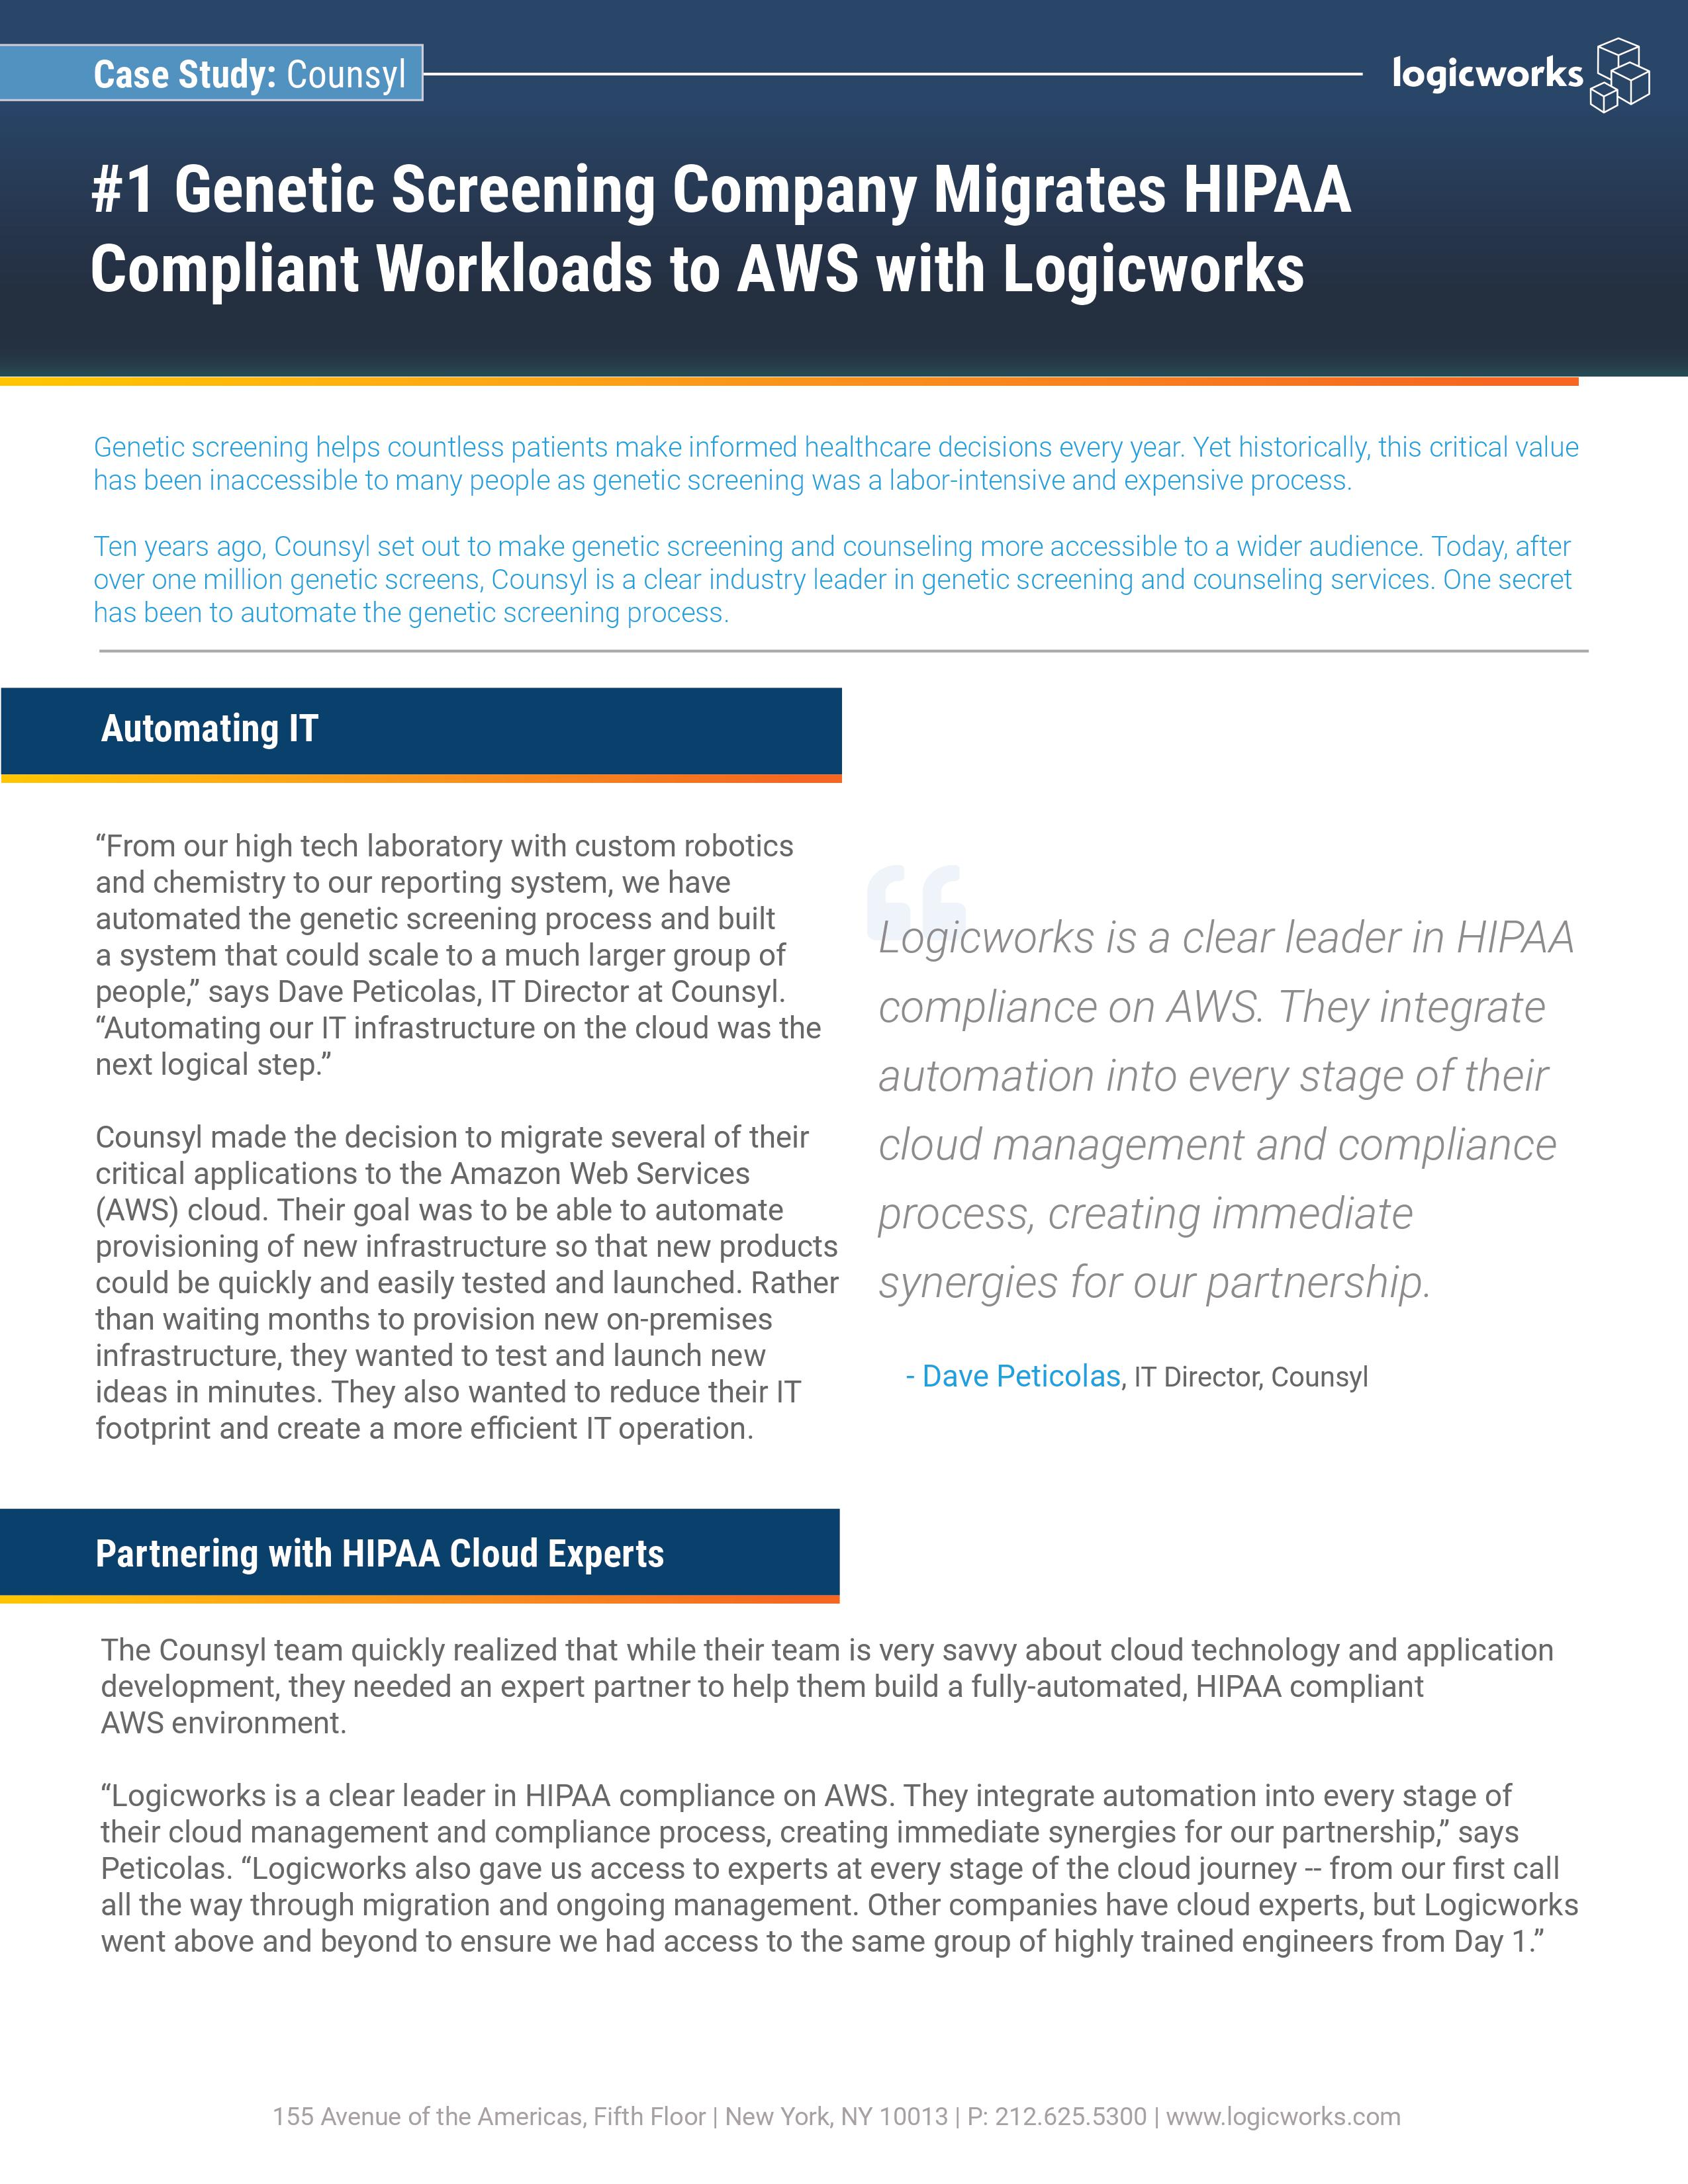 HIPAA-Compliant Workload Migration to AWS Cloud